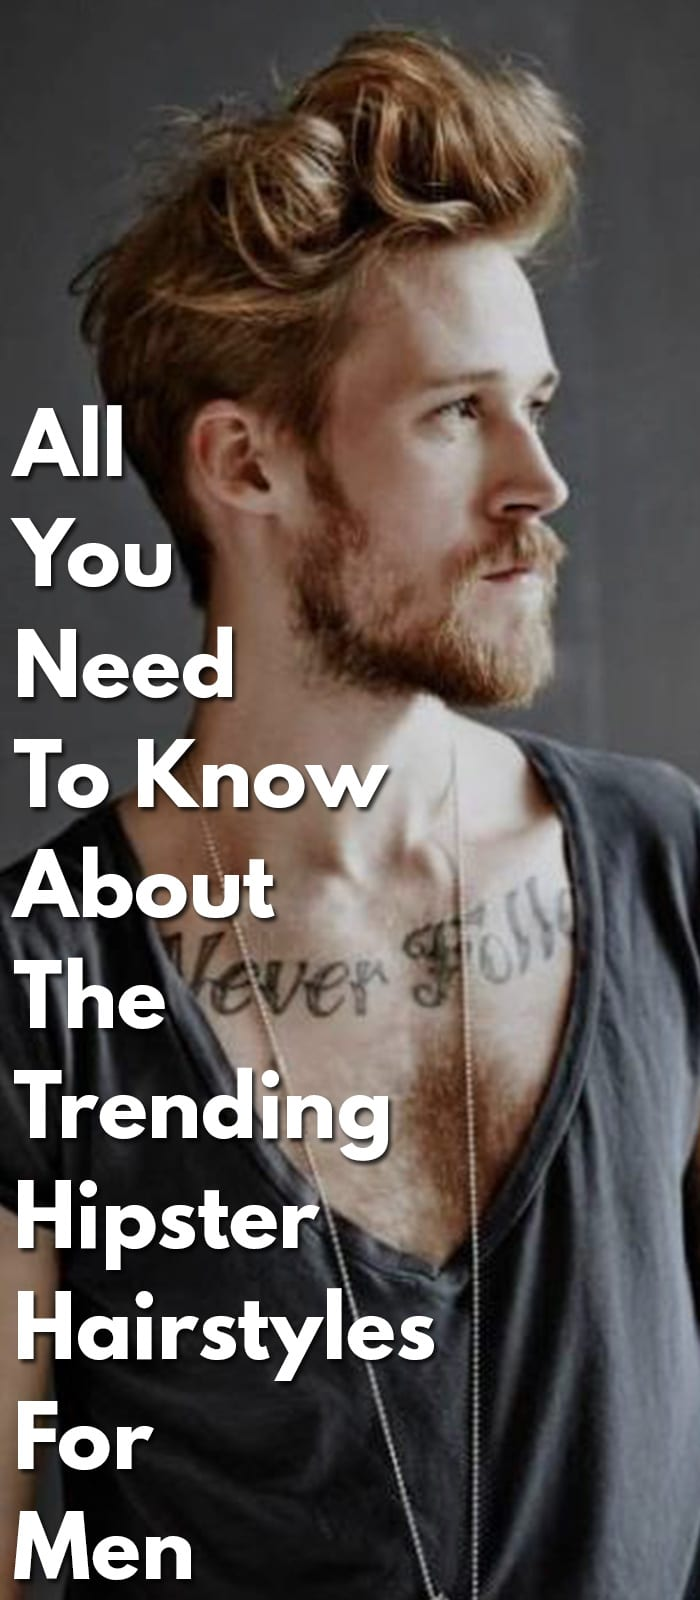 All-You-Need-To-Know-About-The-Trending-Hipster-Hairstyles-For-Men